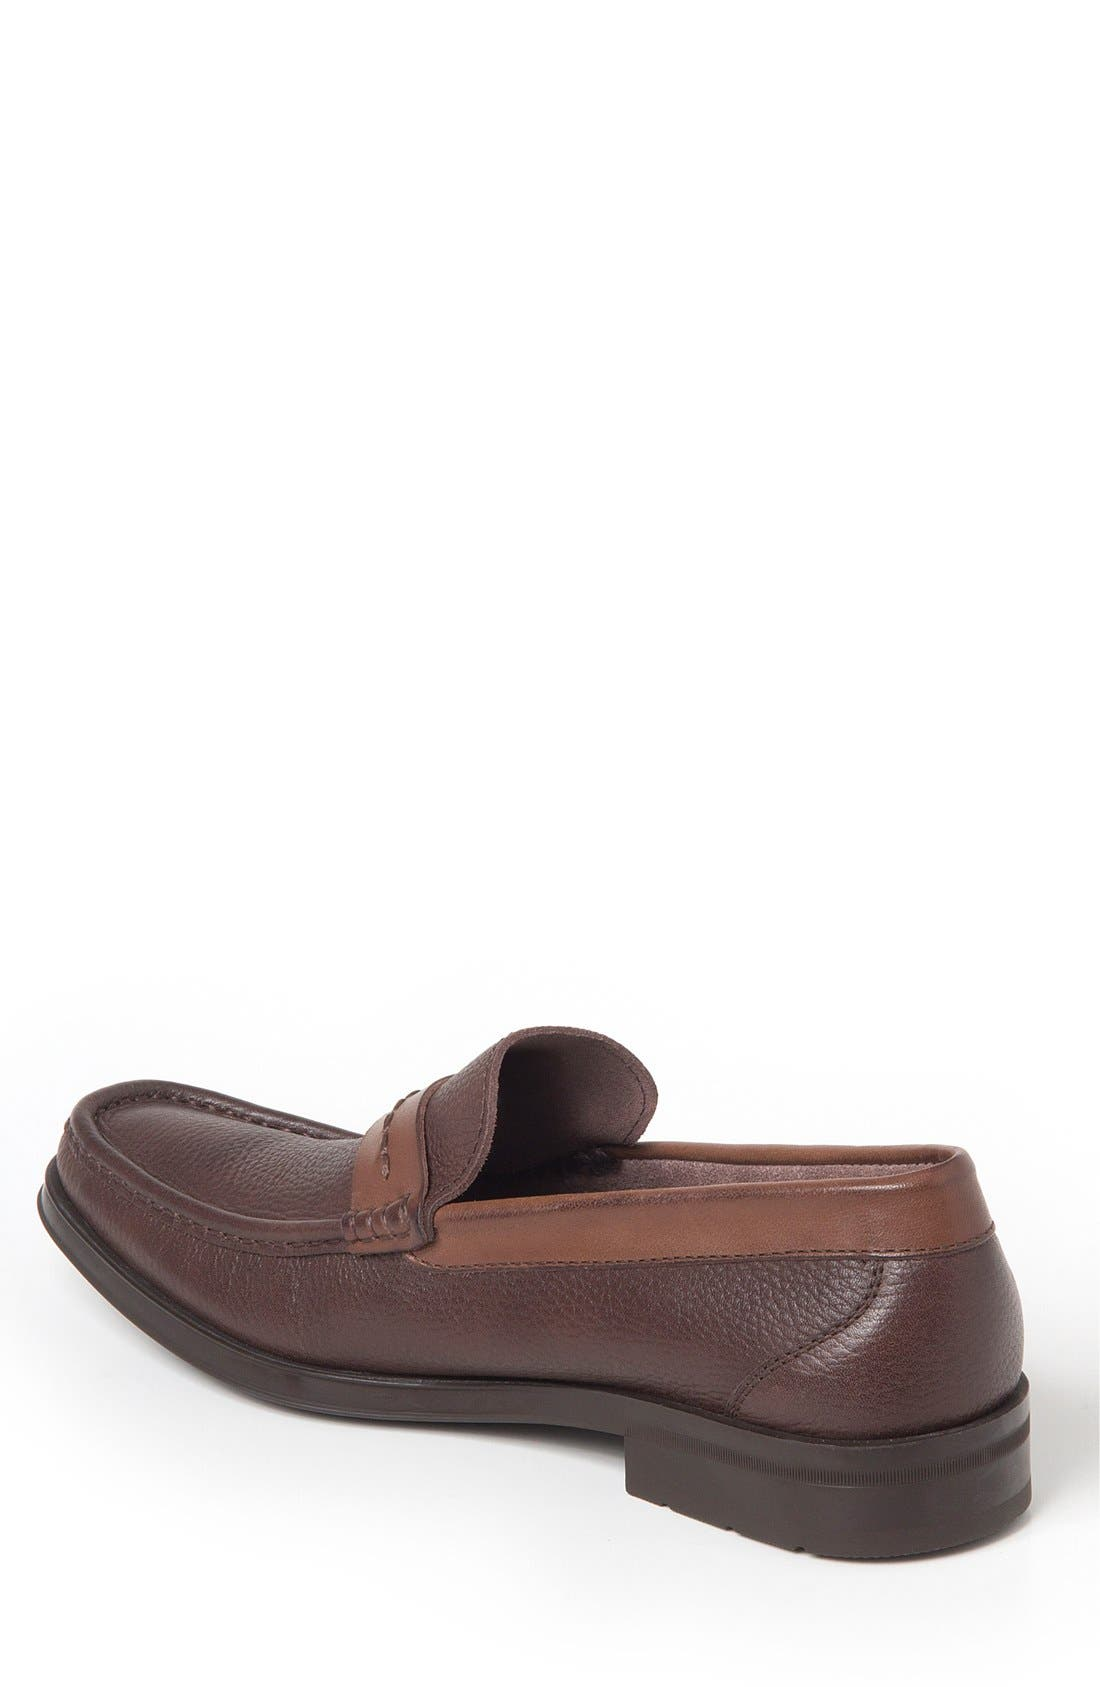 Duero Loafer,                             Alternate thumbnail 2, color,                             Brown Leather